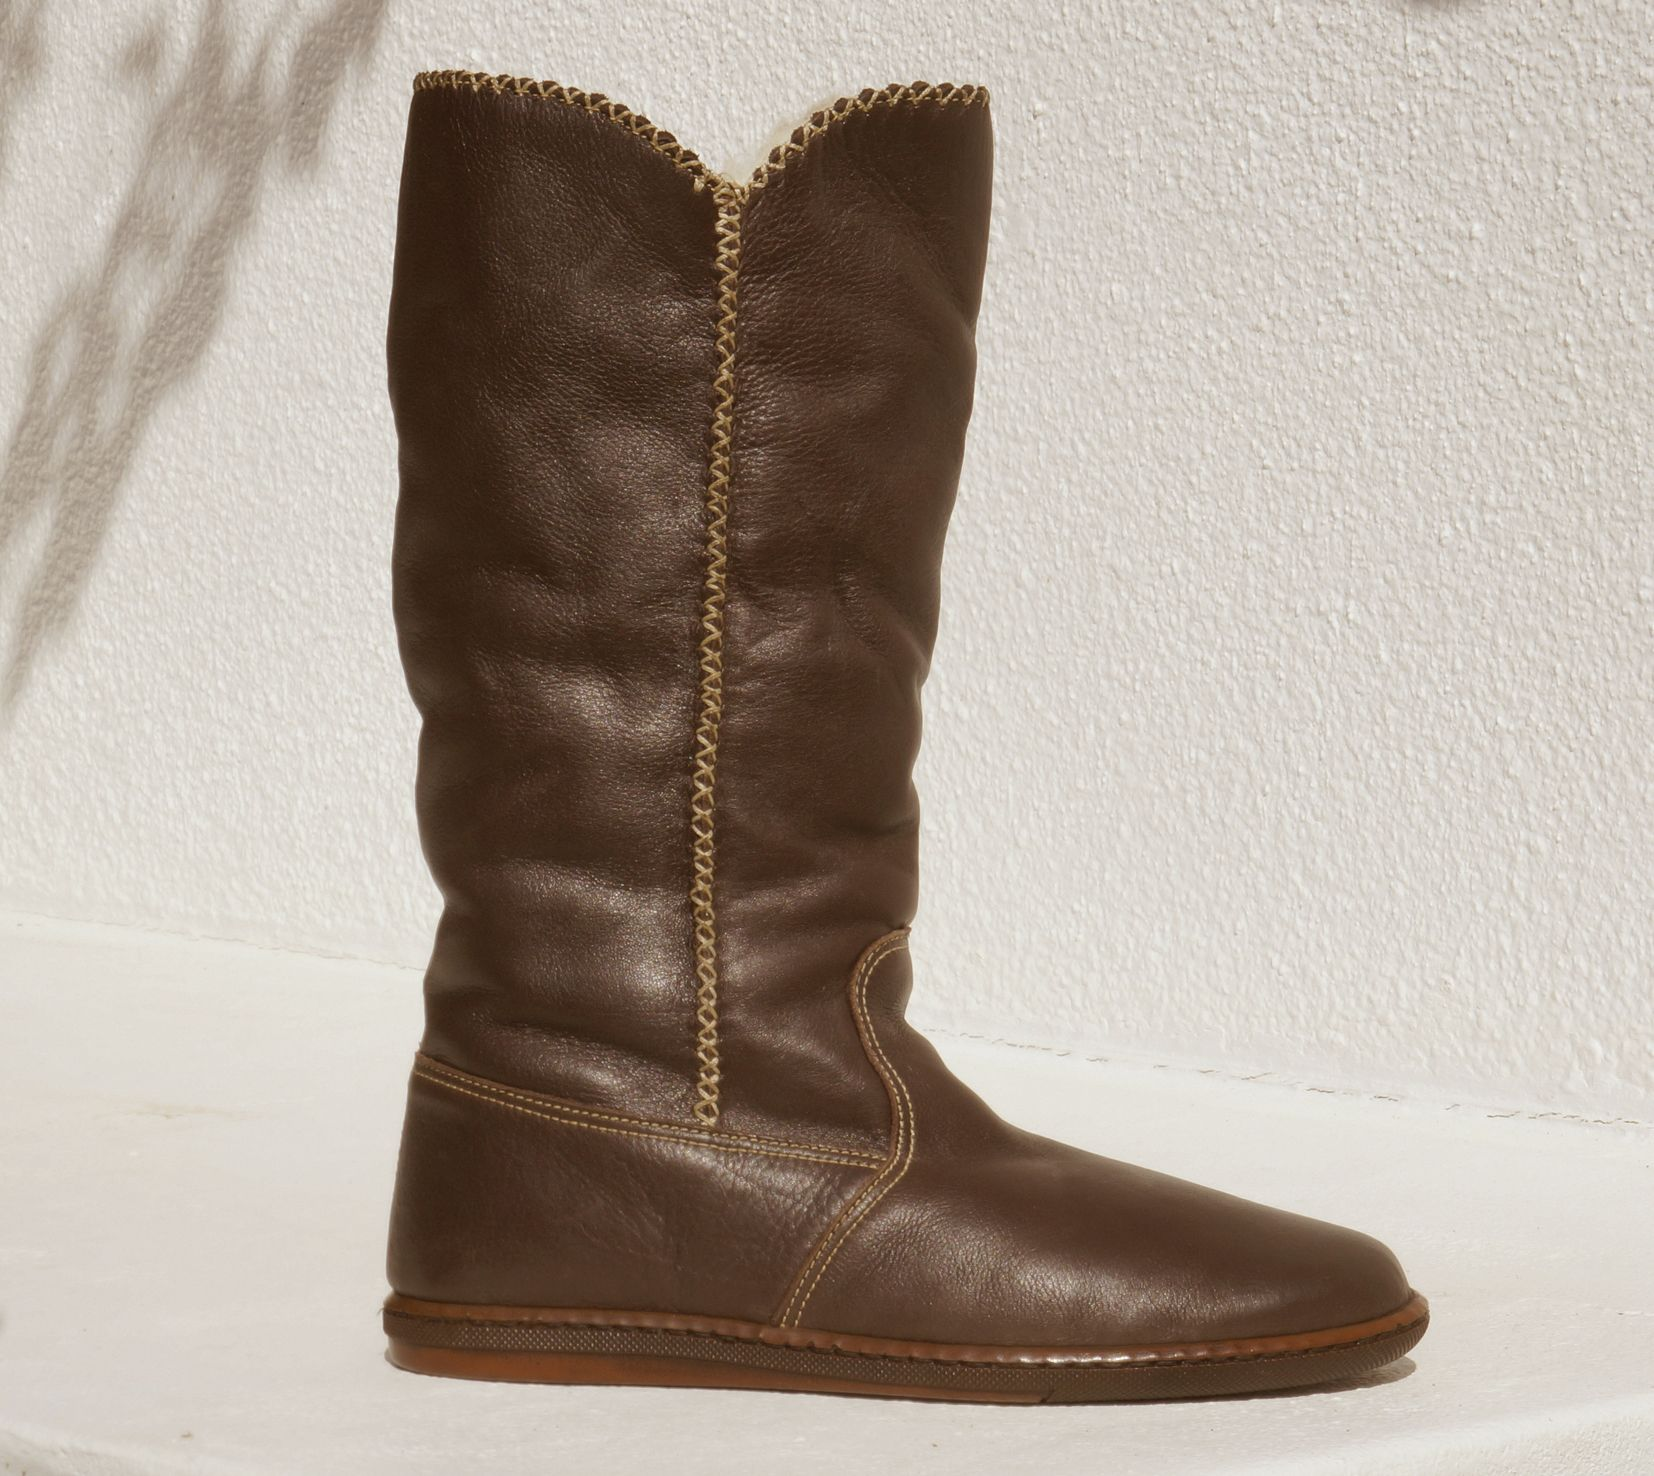 e5c7d395 Tsonga Zontathu Genuine Leather Fur Lined, Long Boot Handcrafted in South  Africa Code: TLZG022 001